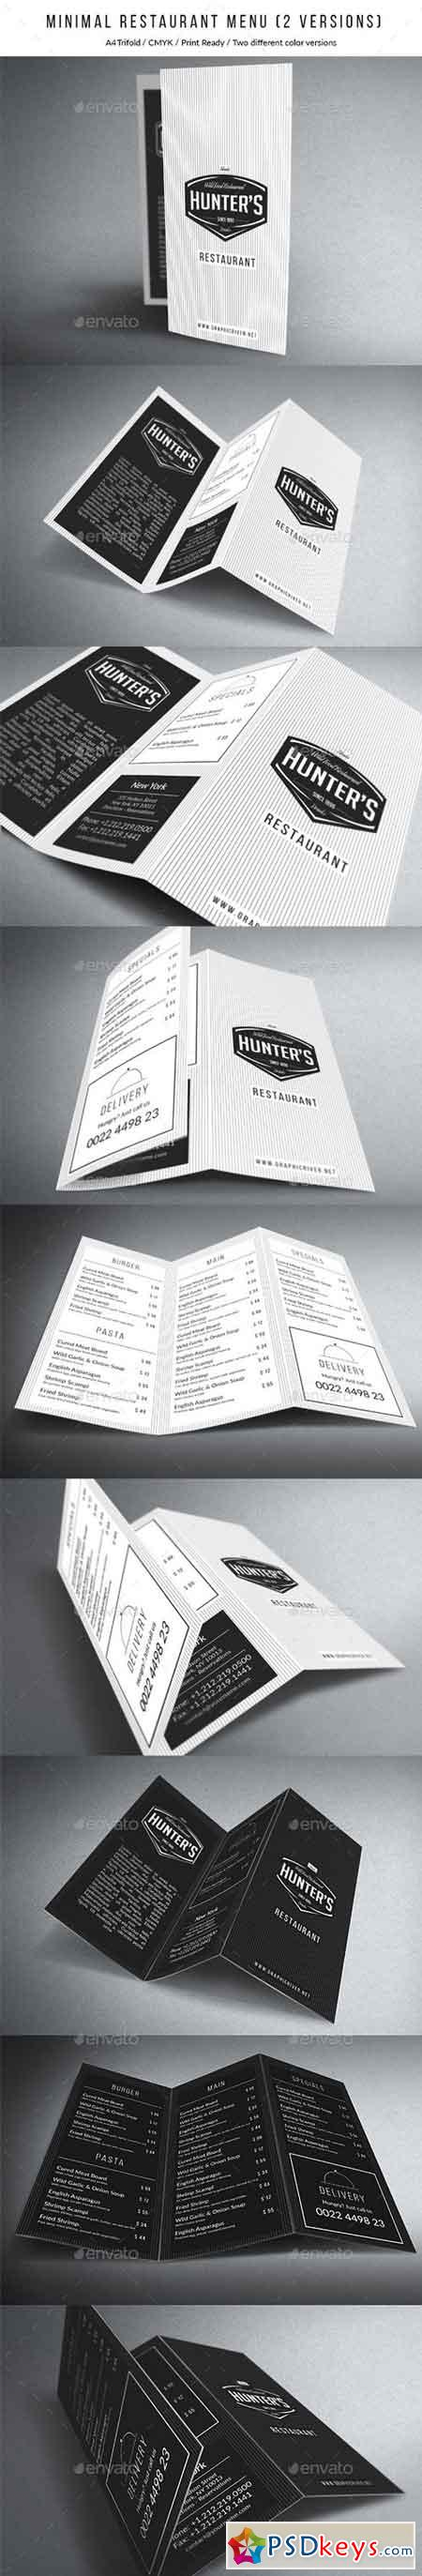 Minimal A4 Trifold Menu - 2 Versions 15646447